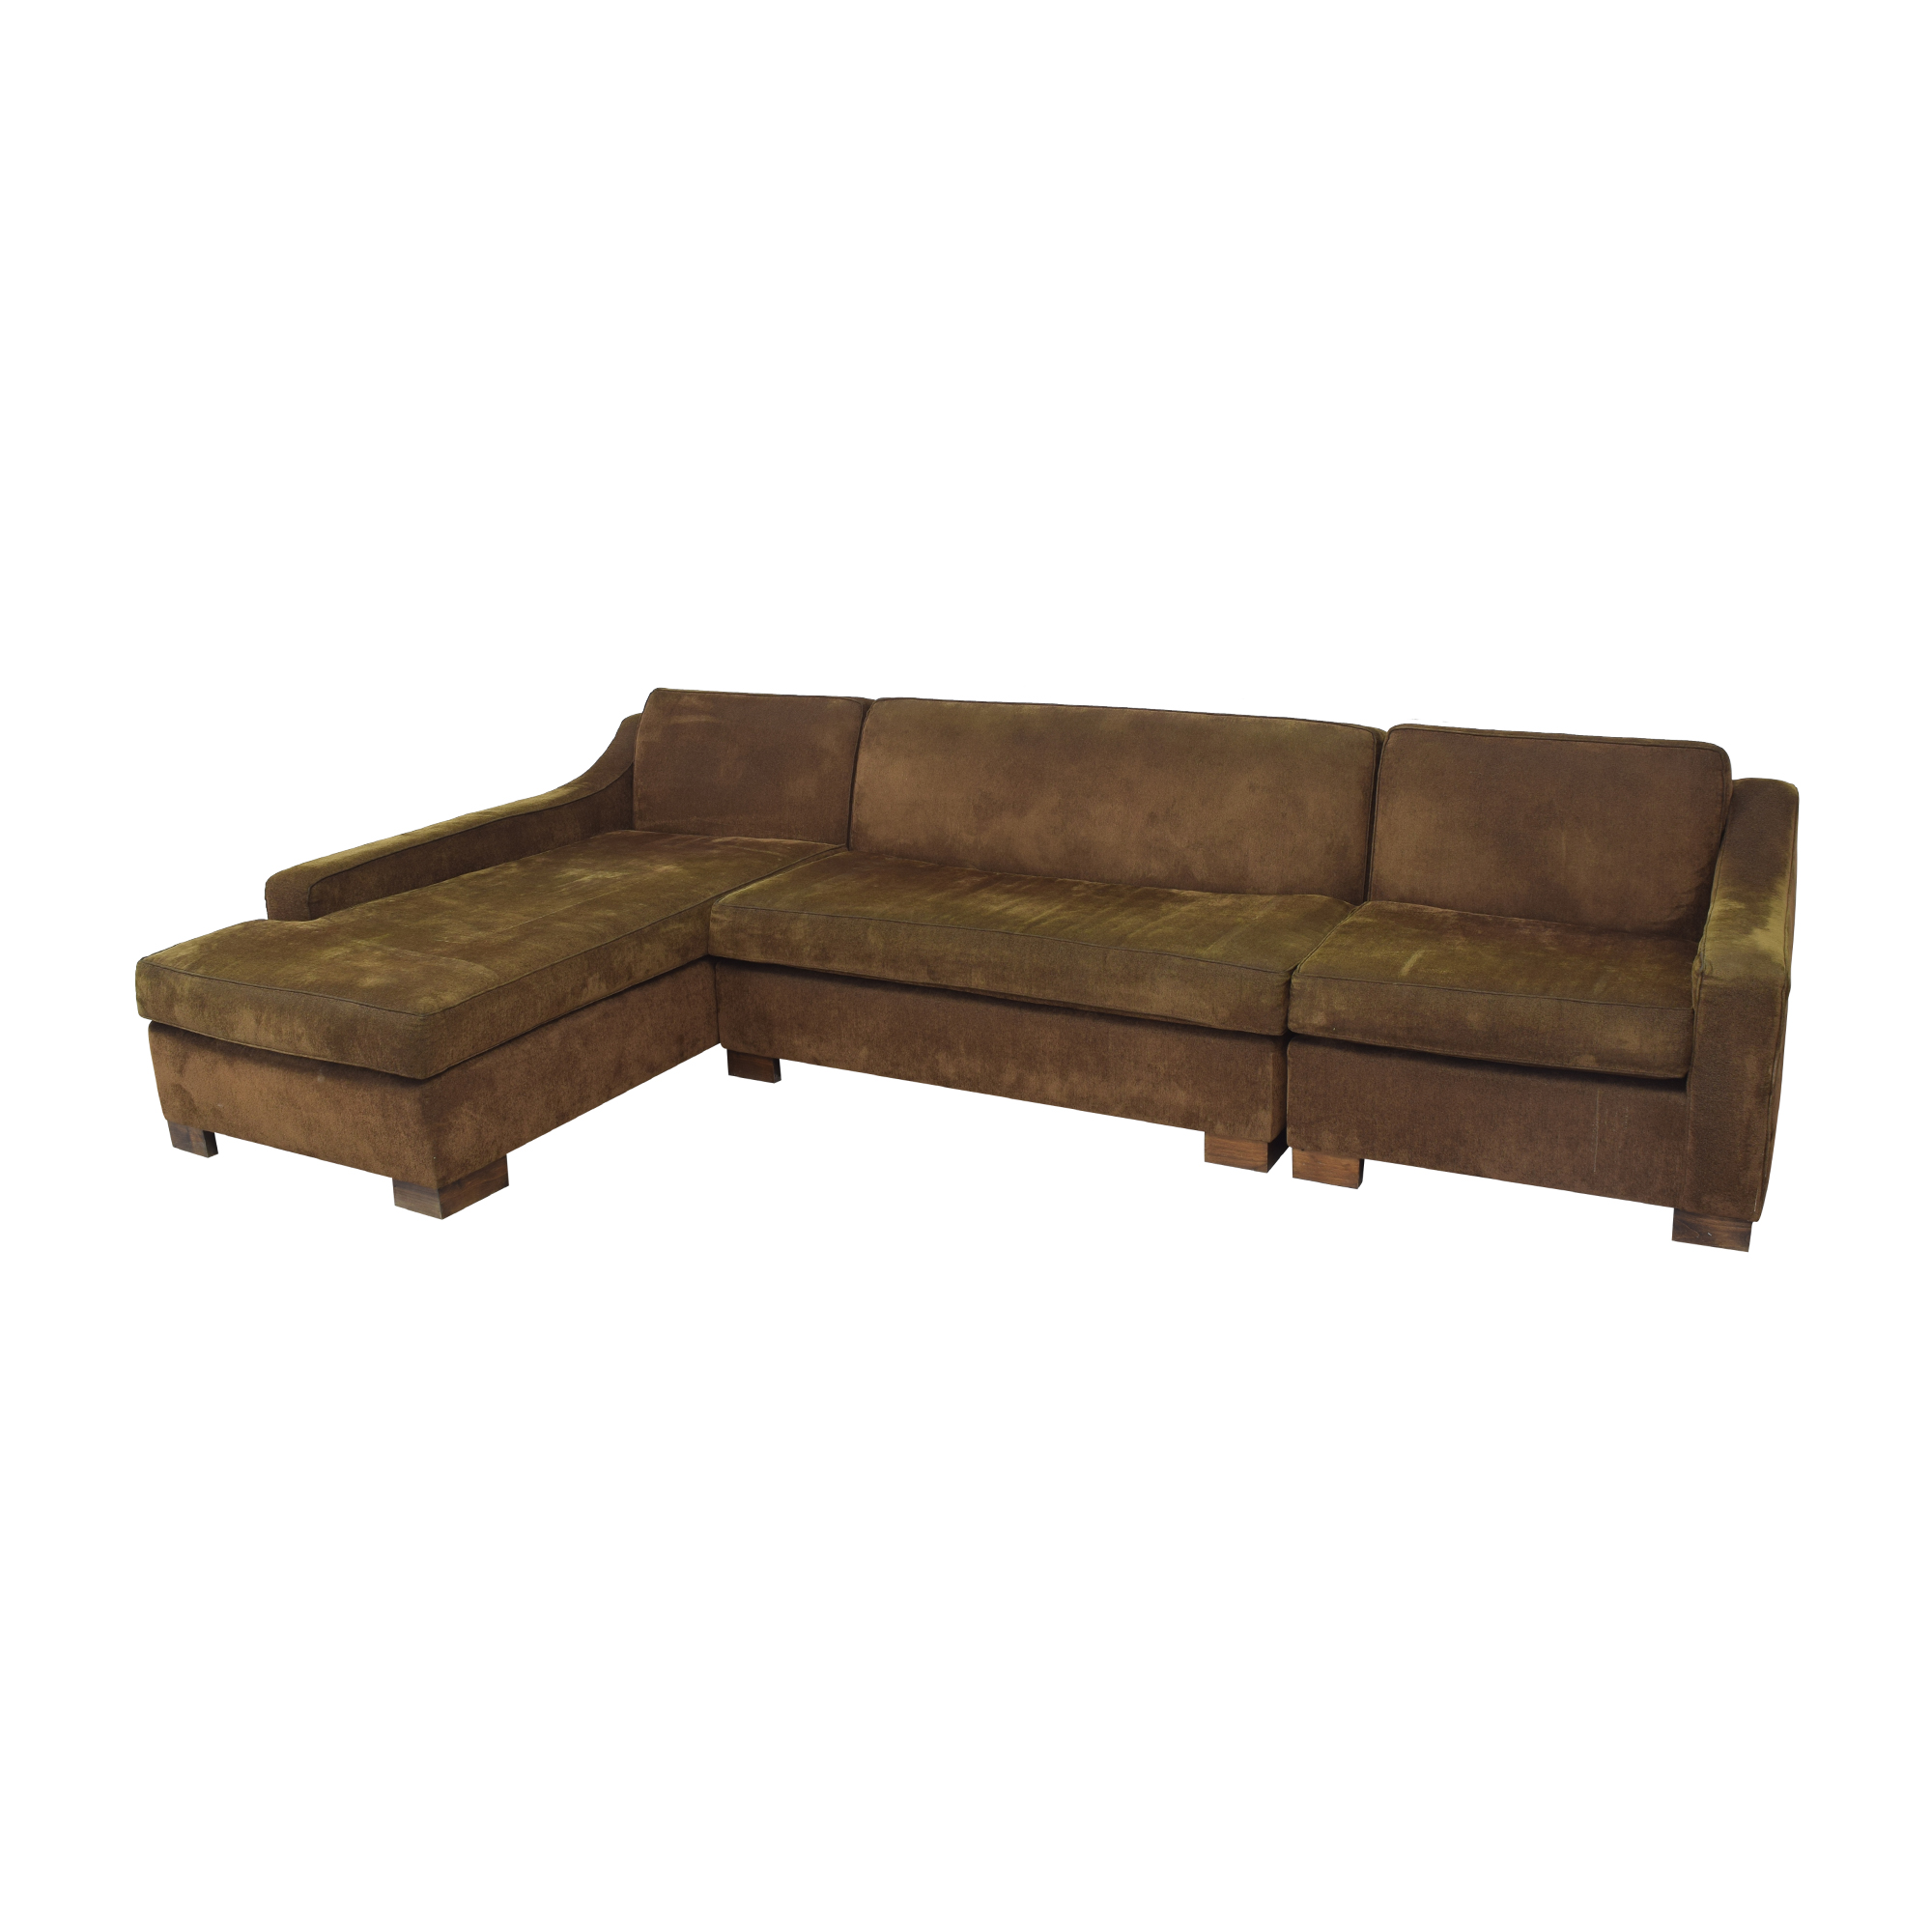 Custom Chaise Sectional Sofa with Ottoman second hand